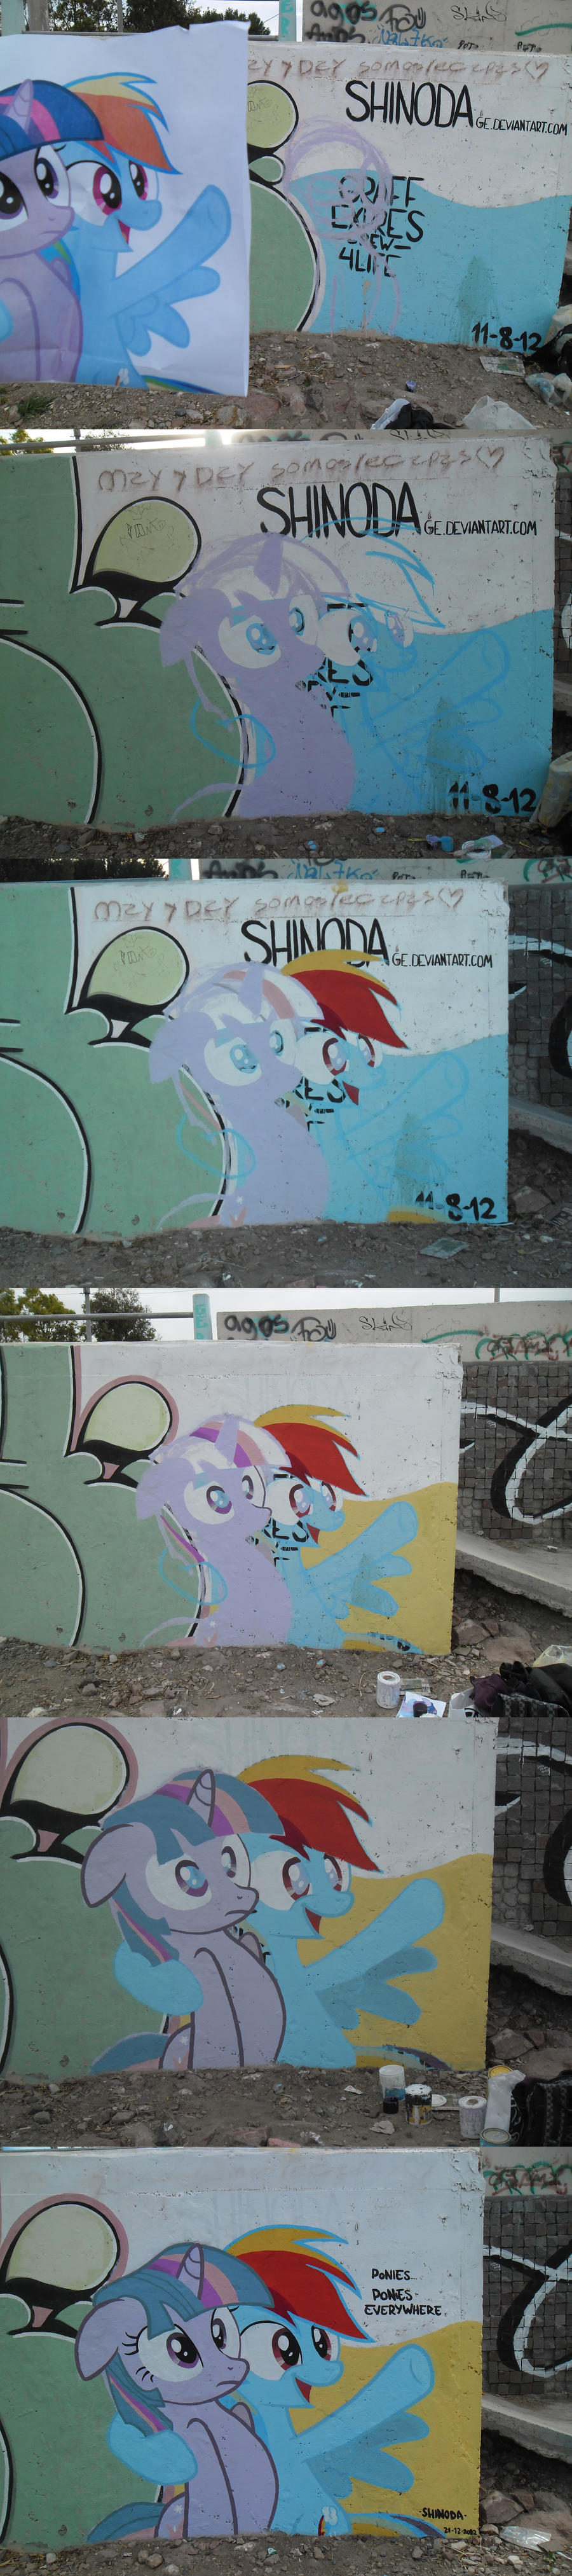 Ponies Everywhere Graffiti (Step by Step) by ShinodaGE